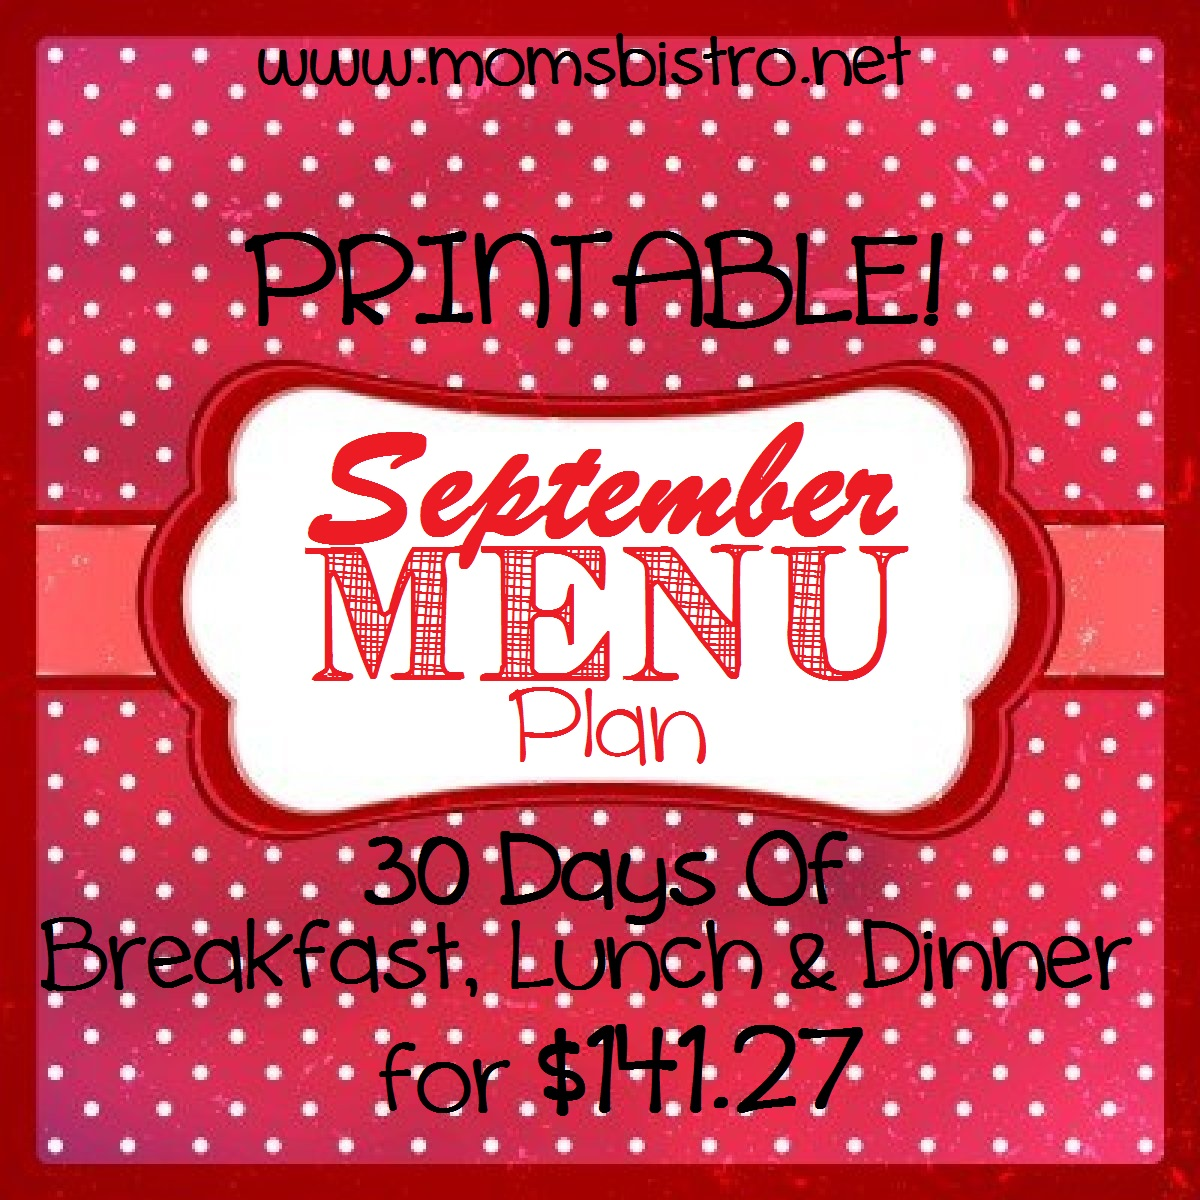 A Month of Meals on a Budget – Breakfast, Lunch & Dinner for $141.27